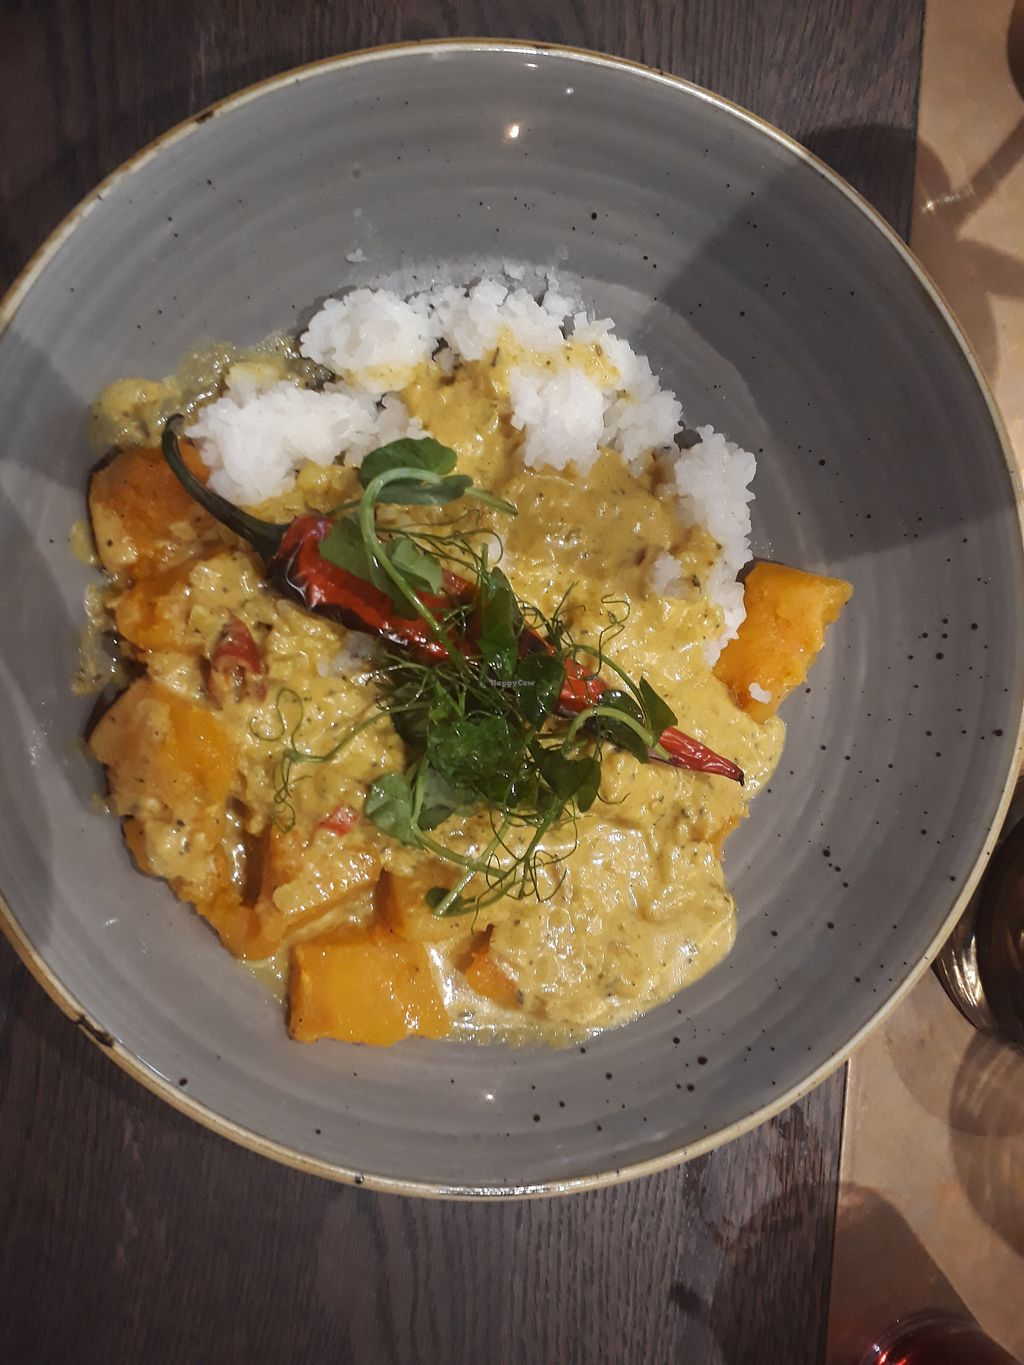 """Photo of The Arkle Manor  by <a href=""""/members/profile/LauraStone90"""">LauraStone90</a> <br/>Spiced Coconut Curry with Ras el hanout roasted squash & sweet potato, sticky jasmine rice, and a scorched red chilli <br/> April 22, 2018  - <a href='/contact/abuse/image/110430/389268'>Report</a>"""